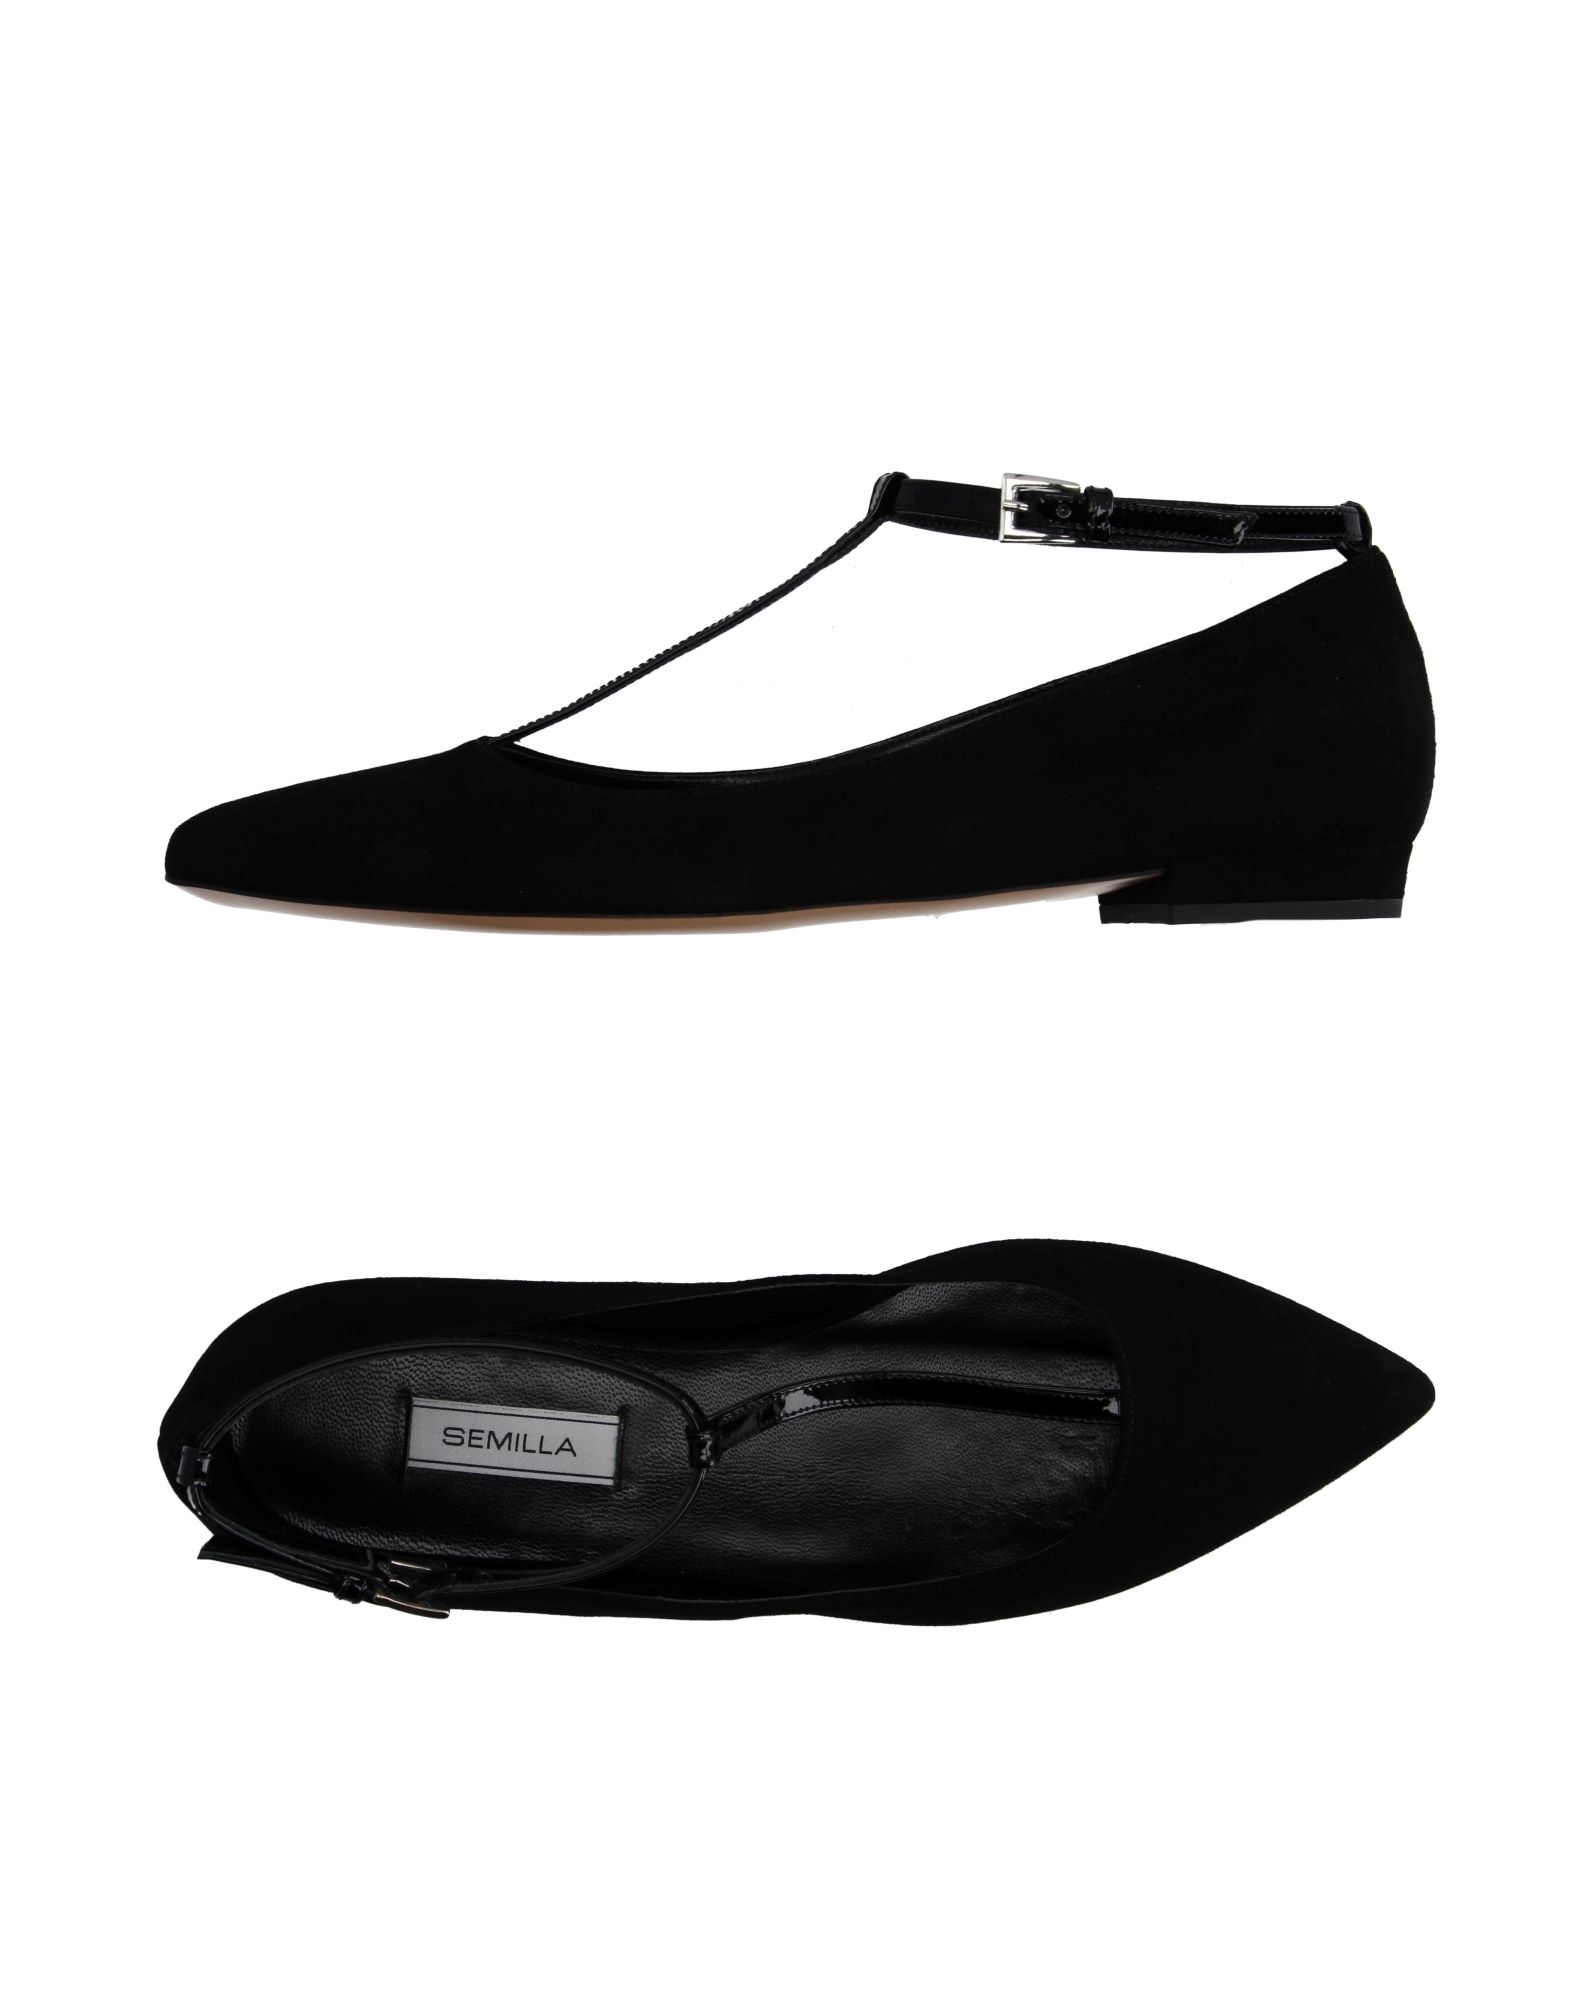 SEMILLA Ballet Flats in Black